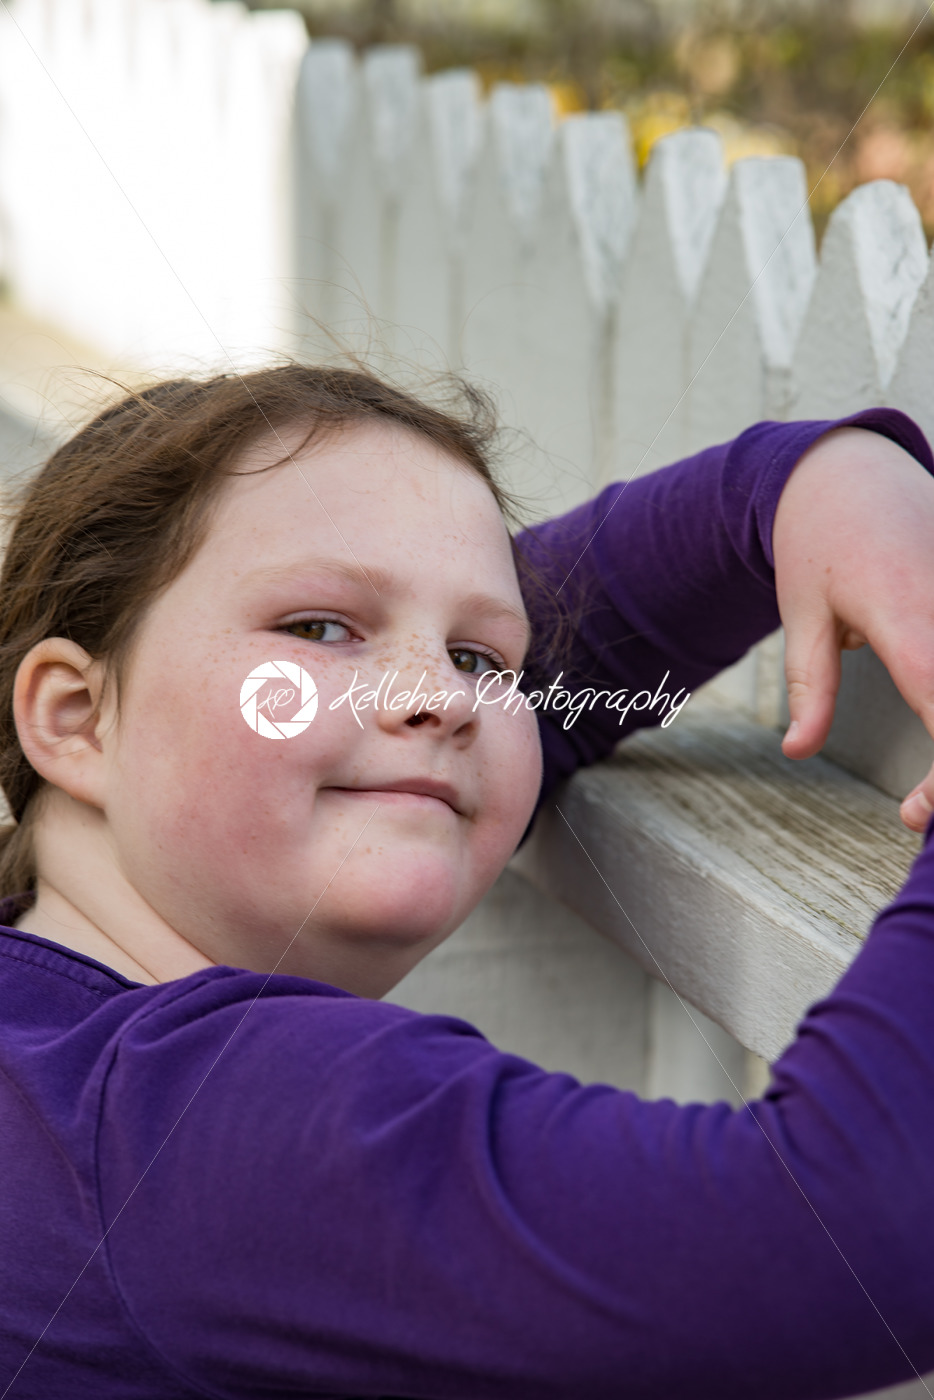 young girl posing leaning on picket fence - Kelleher Photography Store